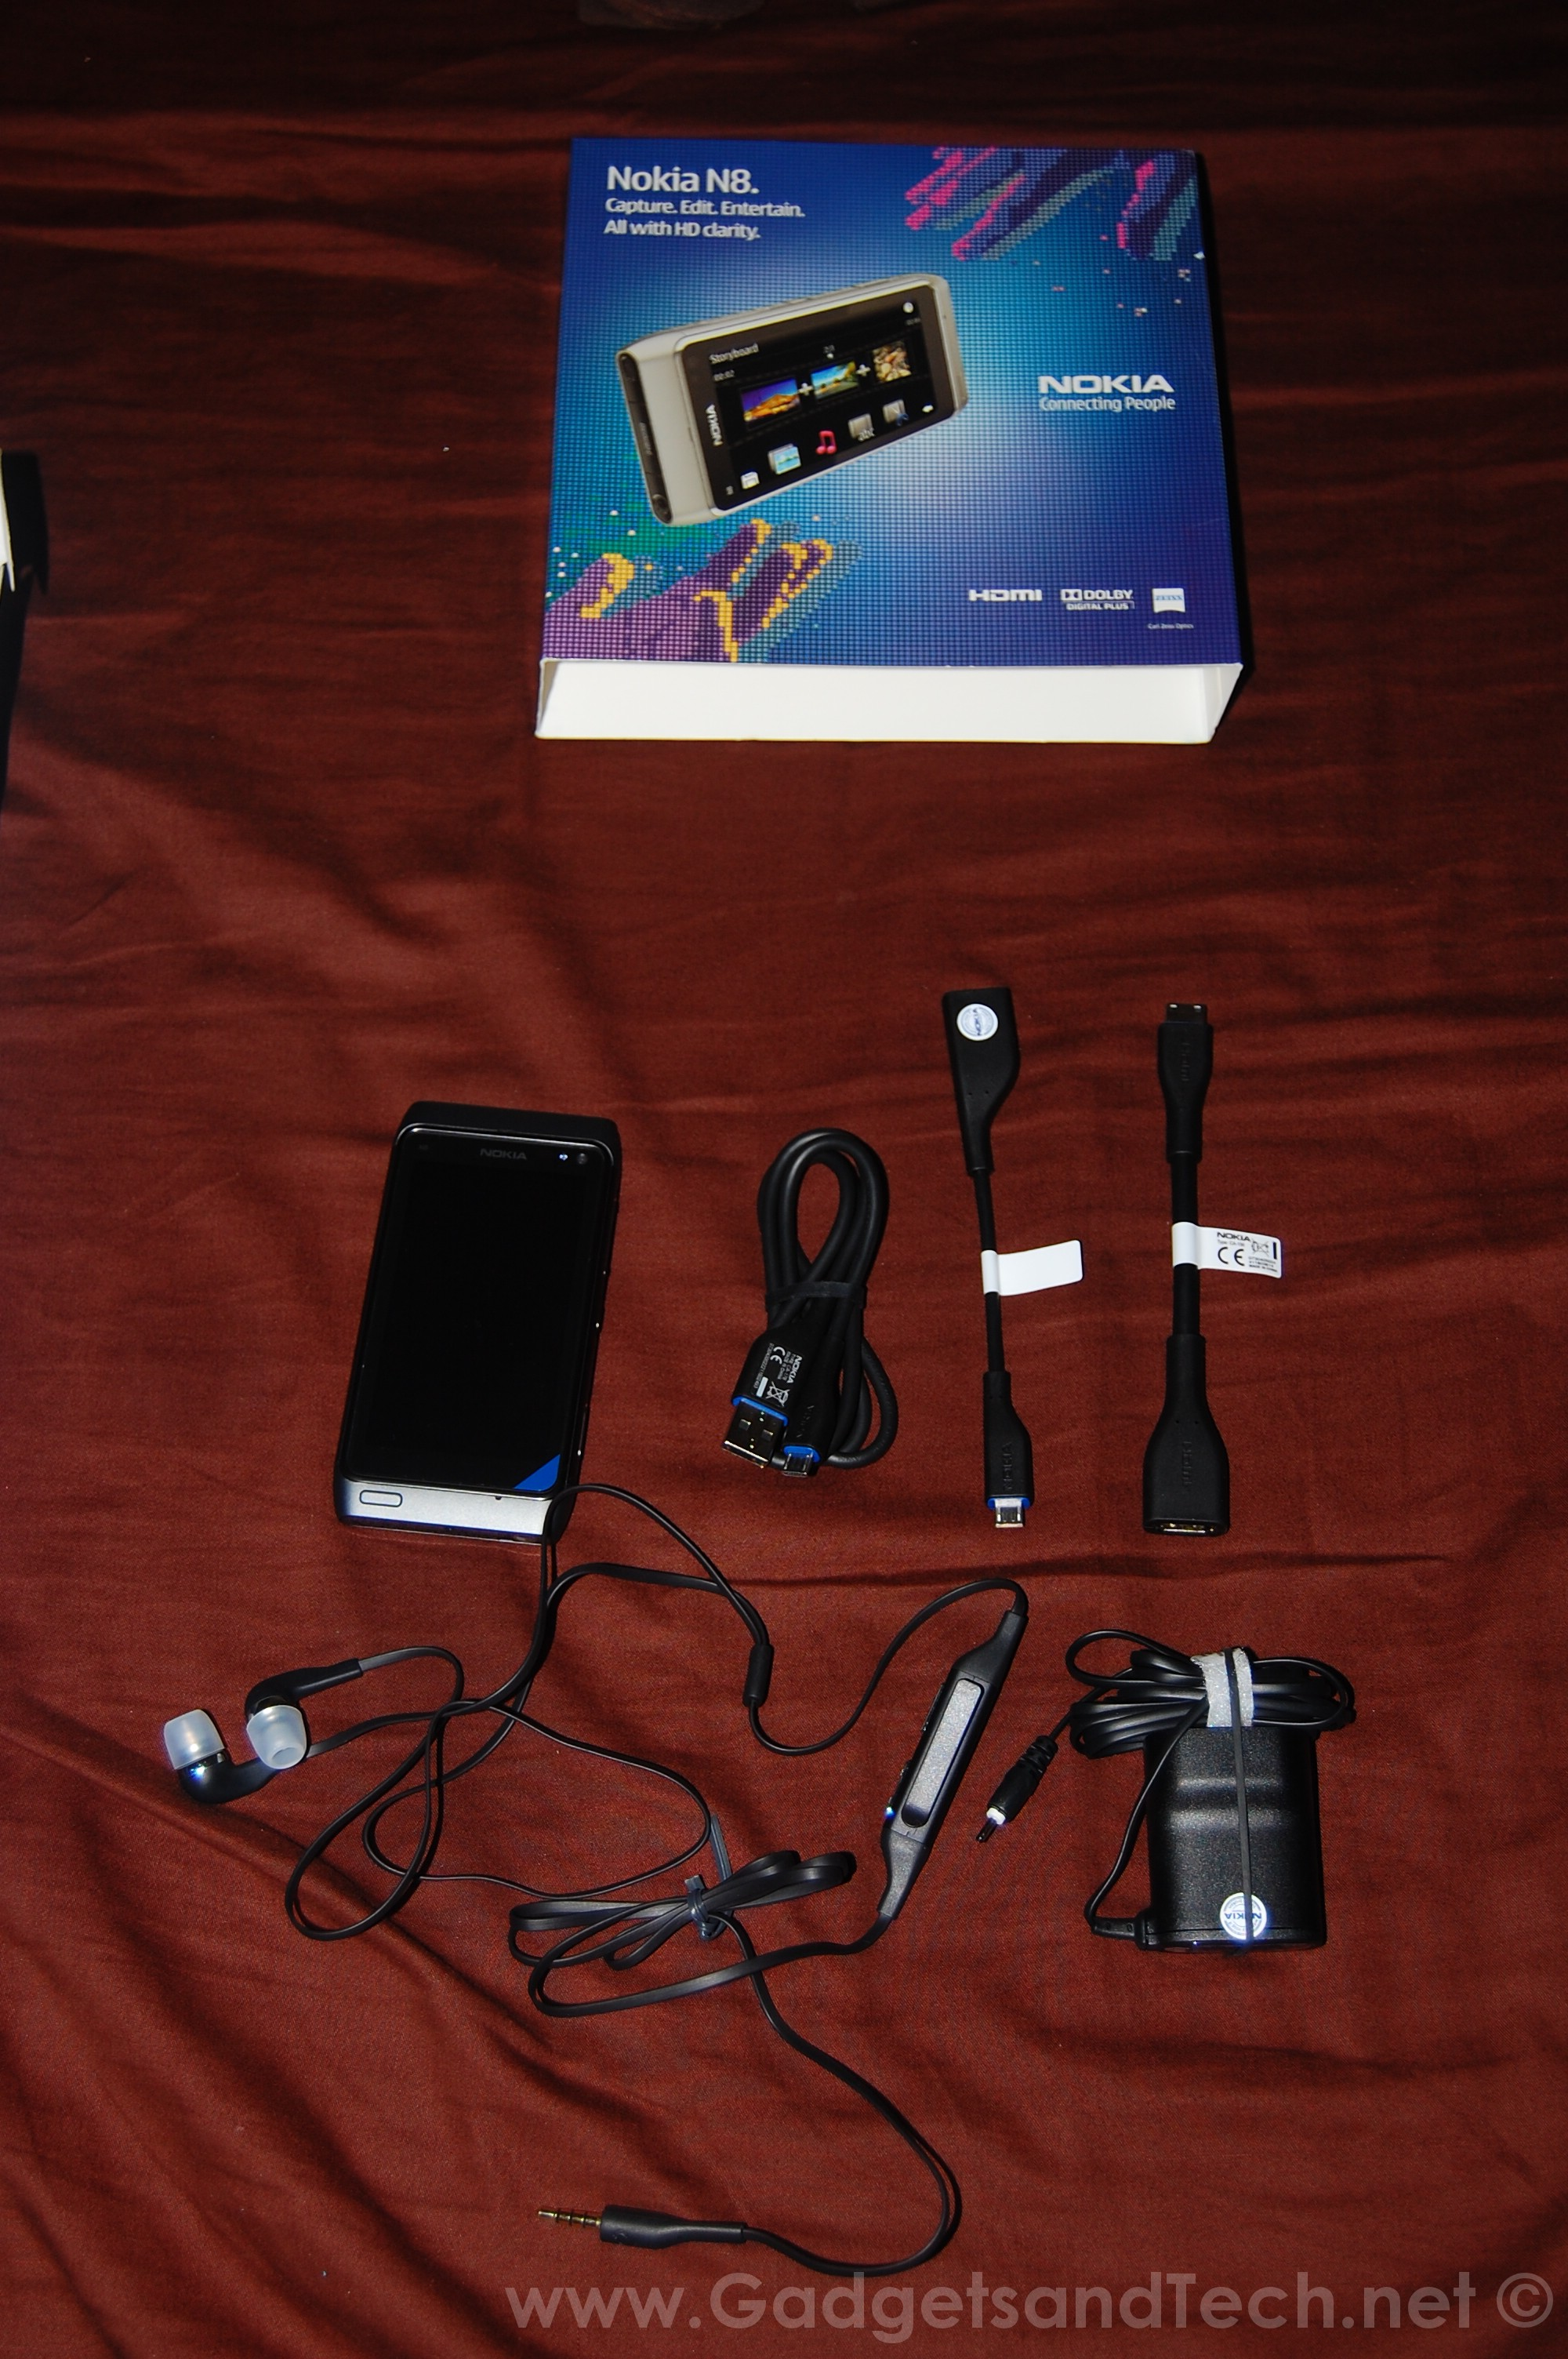 Gadgets And Tech S Nokia N8 Unboxing Pre Ordered In The